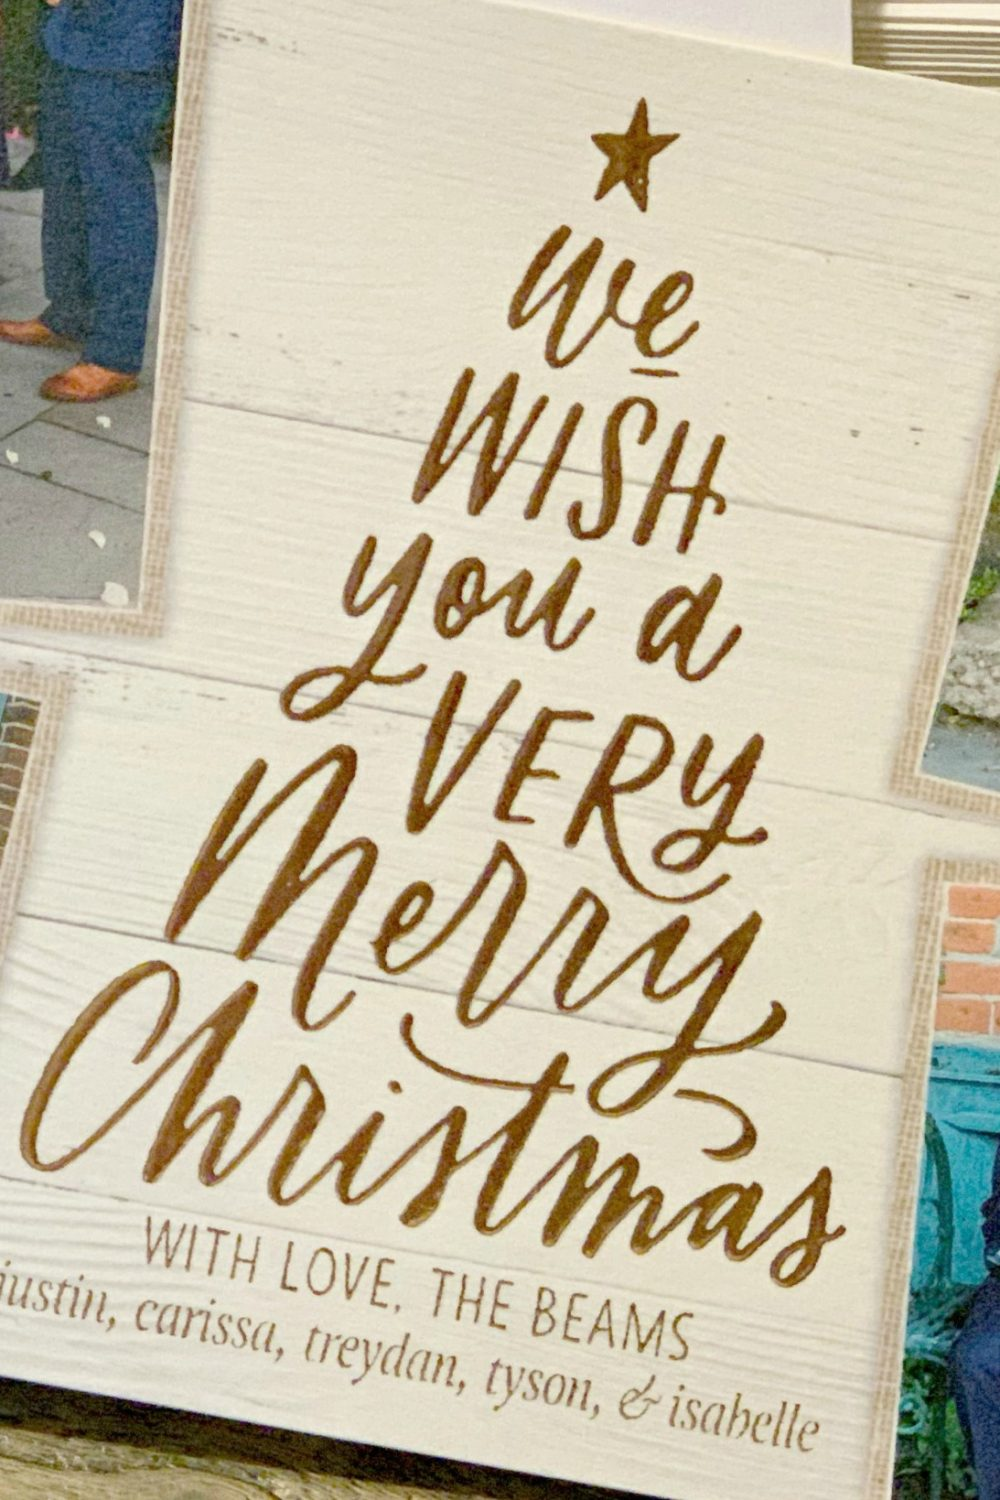 Capture the Spirit of the Season with Shutterfly Holiday Cards